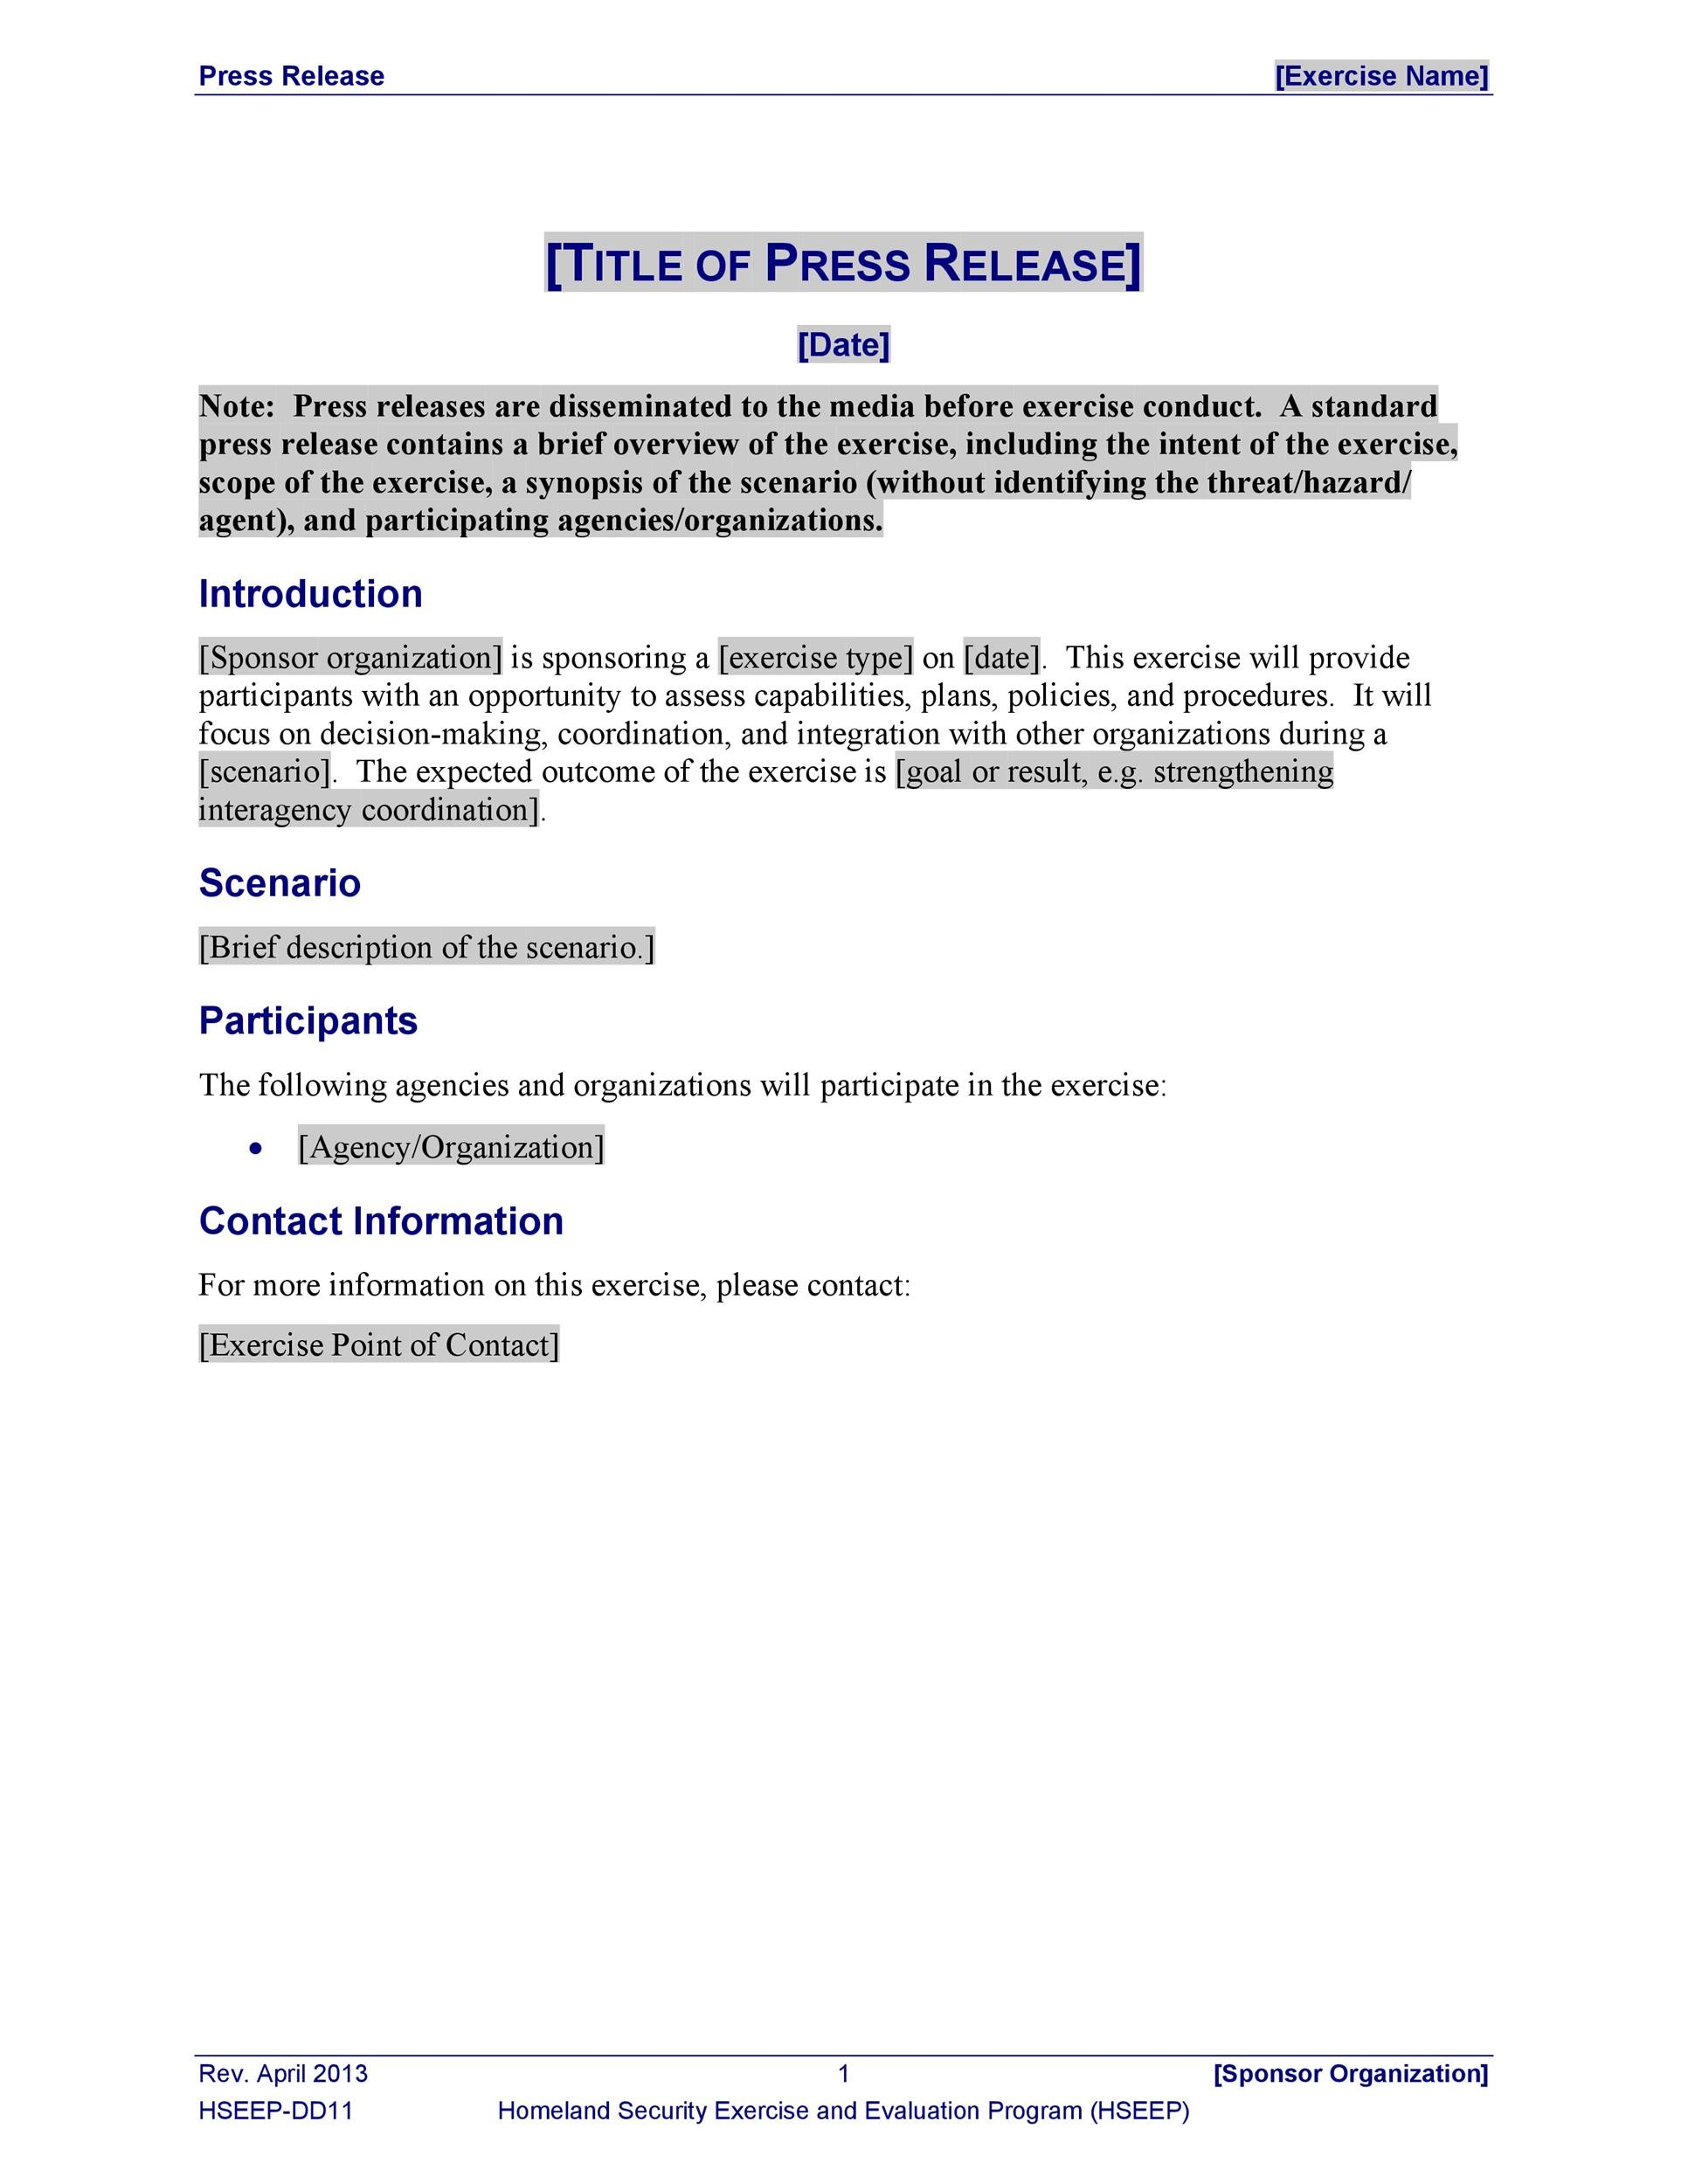 46 press release format templates examples samples template lab free press release template 05 maxwellsz